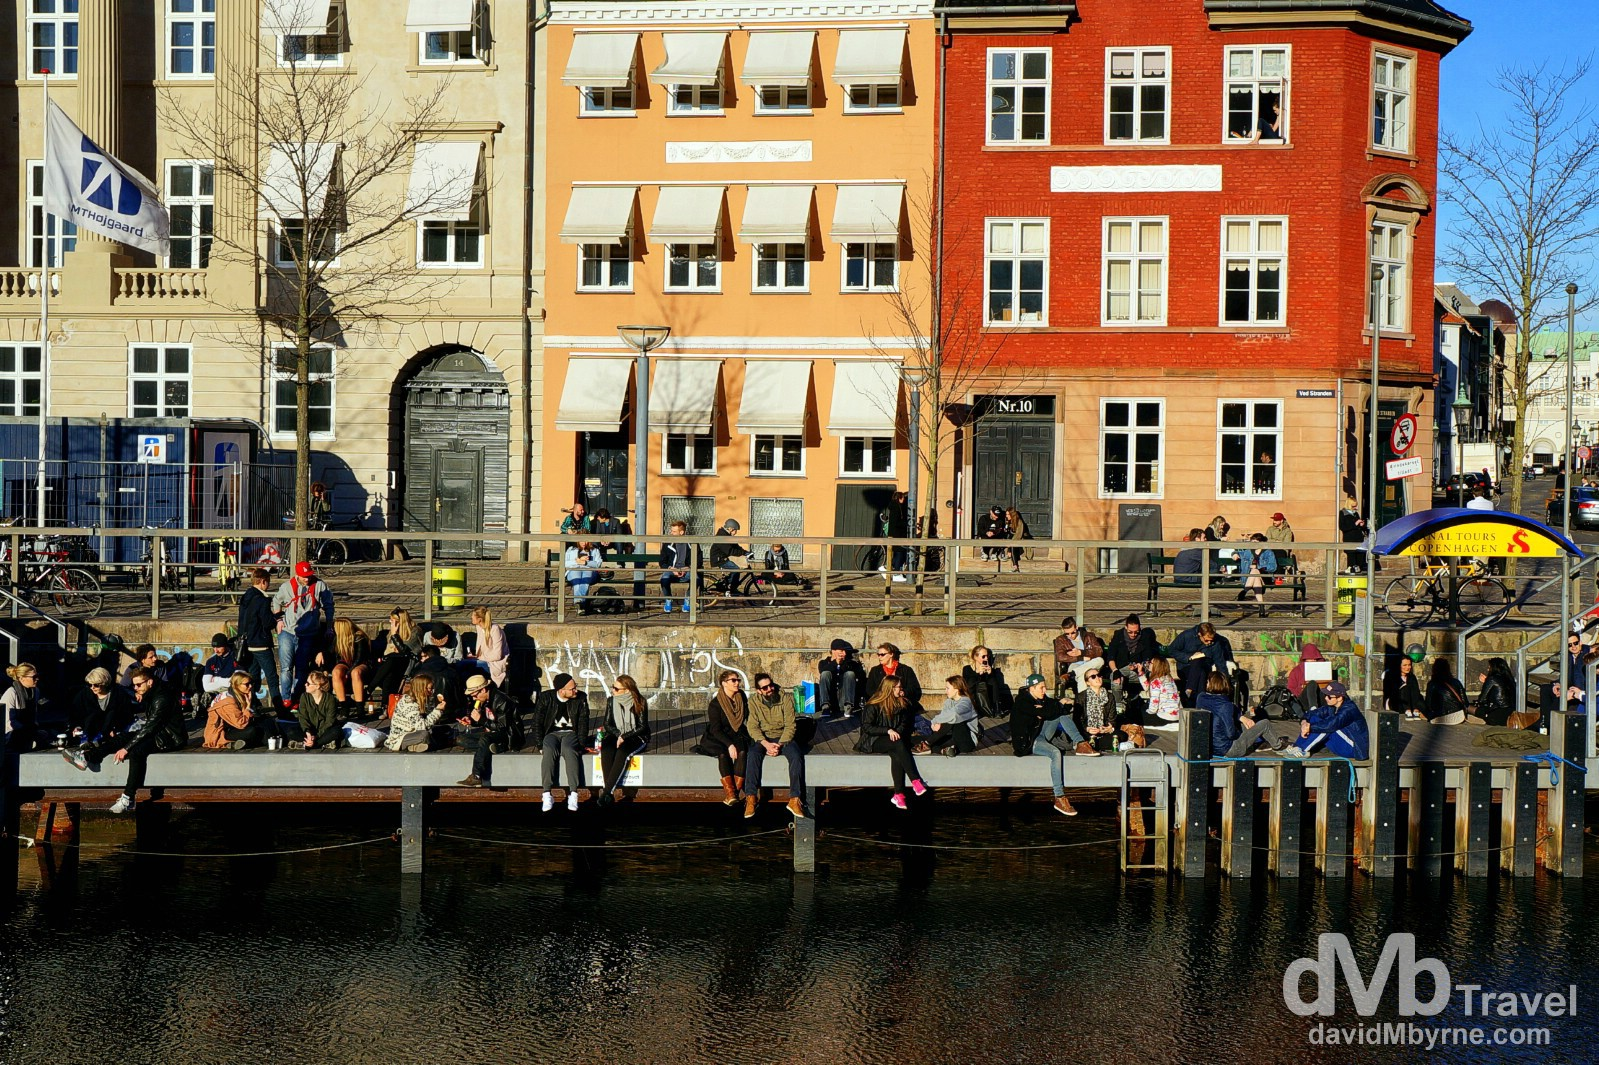 Sitting by the Slotsholms Kanal (canal) in Copenhagen, Denmark. March 12th, 2014 (Nex-5r || SEL 18-55mm || 27mm, 1/400sec, f/8.0, iso100)